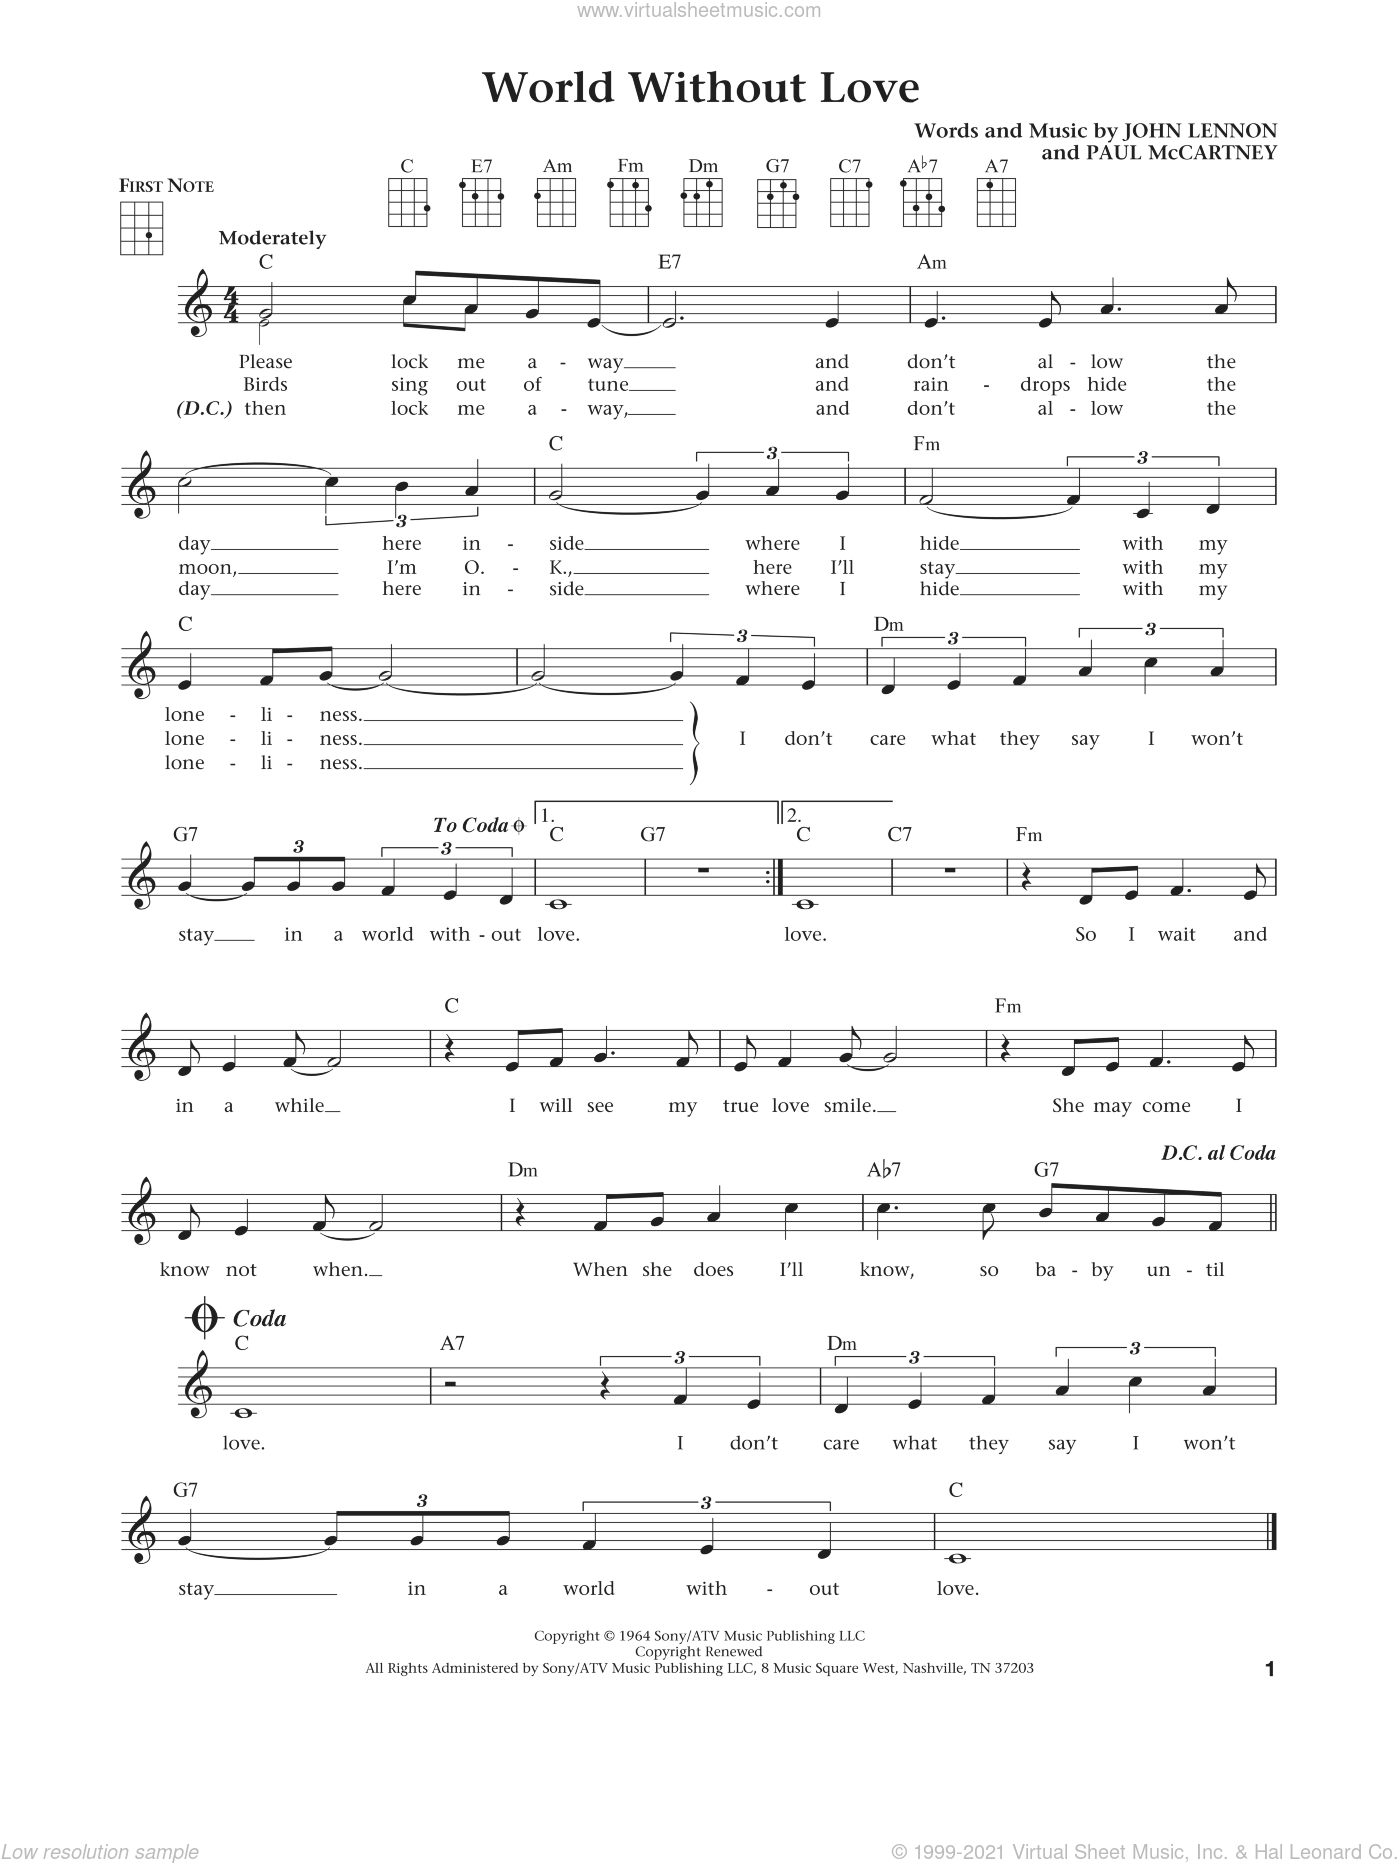 World Without Love (from The Daily Ukulele) (arr. Liz and Jim Beloff) sheet music for ukulele by Paul McCartney, Jim Beloff, Liz Beloff, Peter and Gordon and John Lennon, intermediate skill level